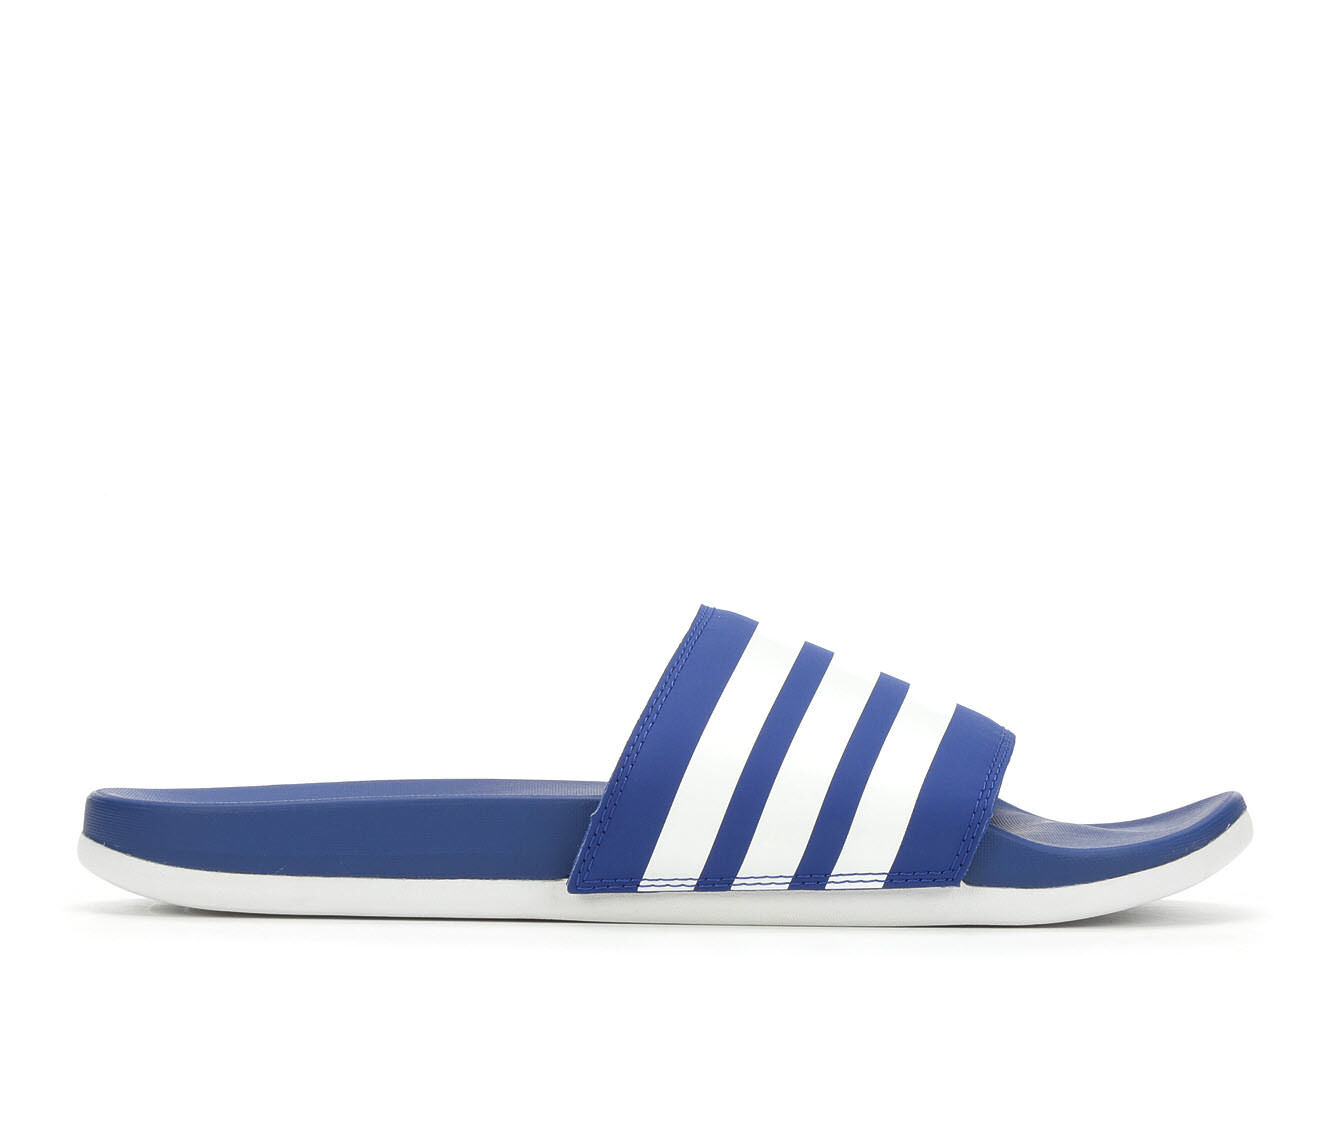 Men's Adidas Adilette Cloudfoam Plus Sport Slides Royal Blue/Wht